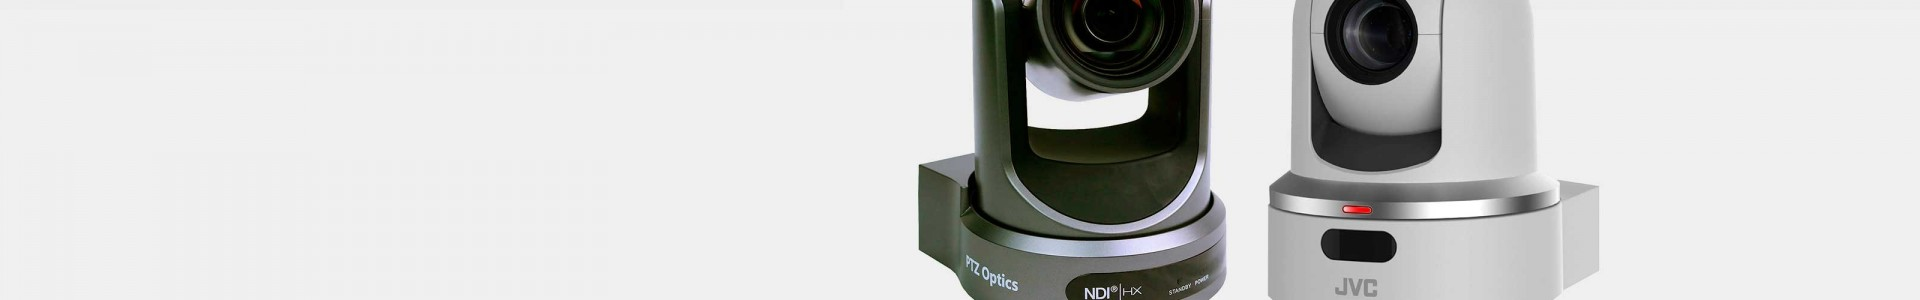 PTZ or Robotic Cameras - Find your PTZ Camera at Avacab